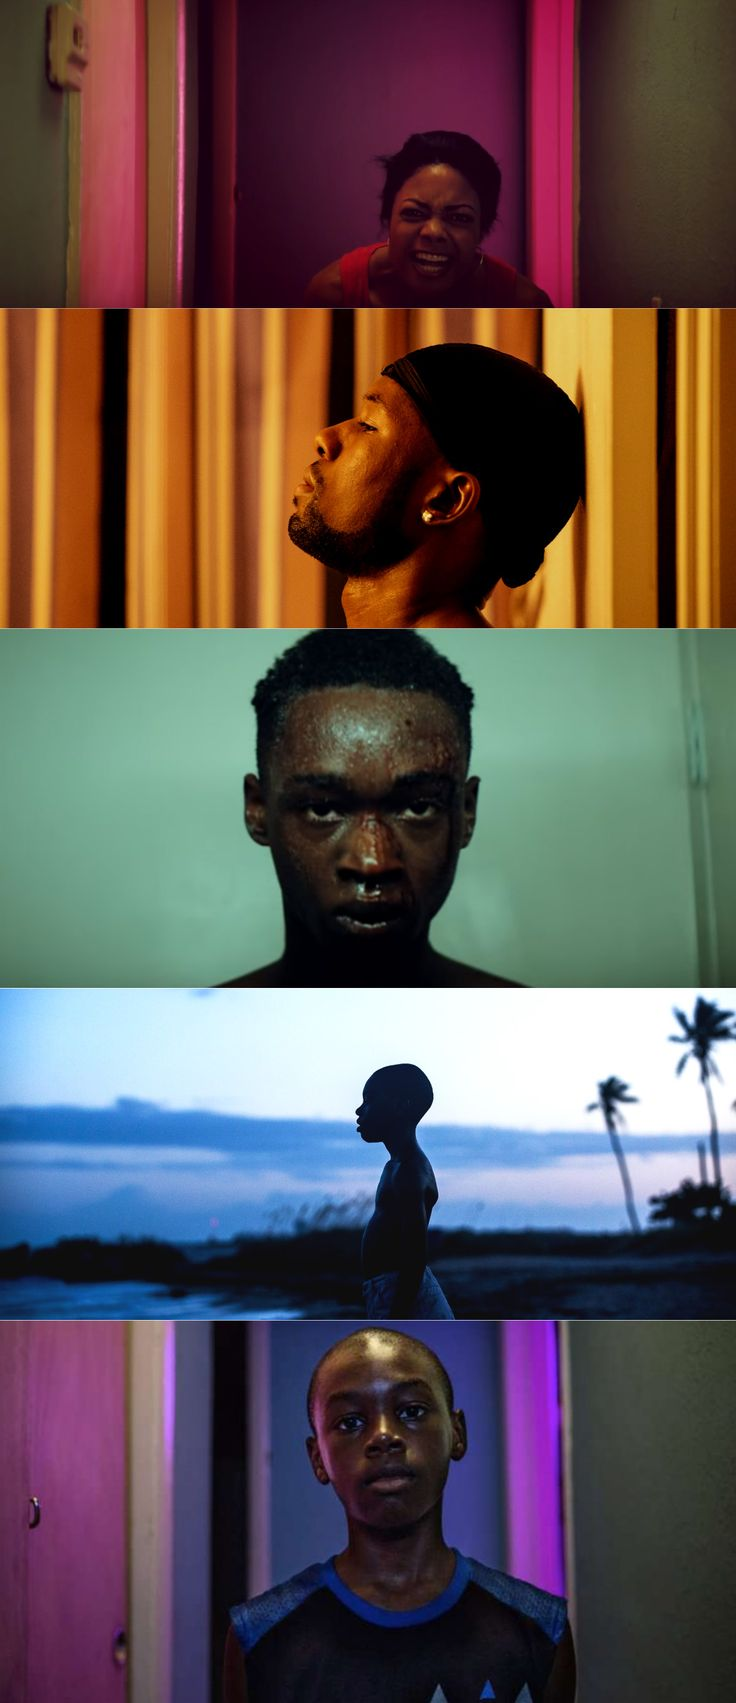 As cores e o sentimento por trás de Moonlight, favorito ao Oscar. Estreia dia 23/02 na CineSala